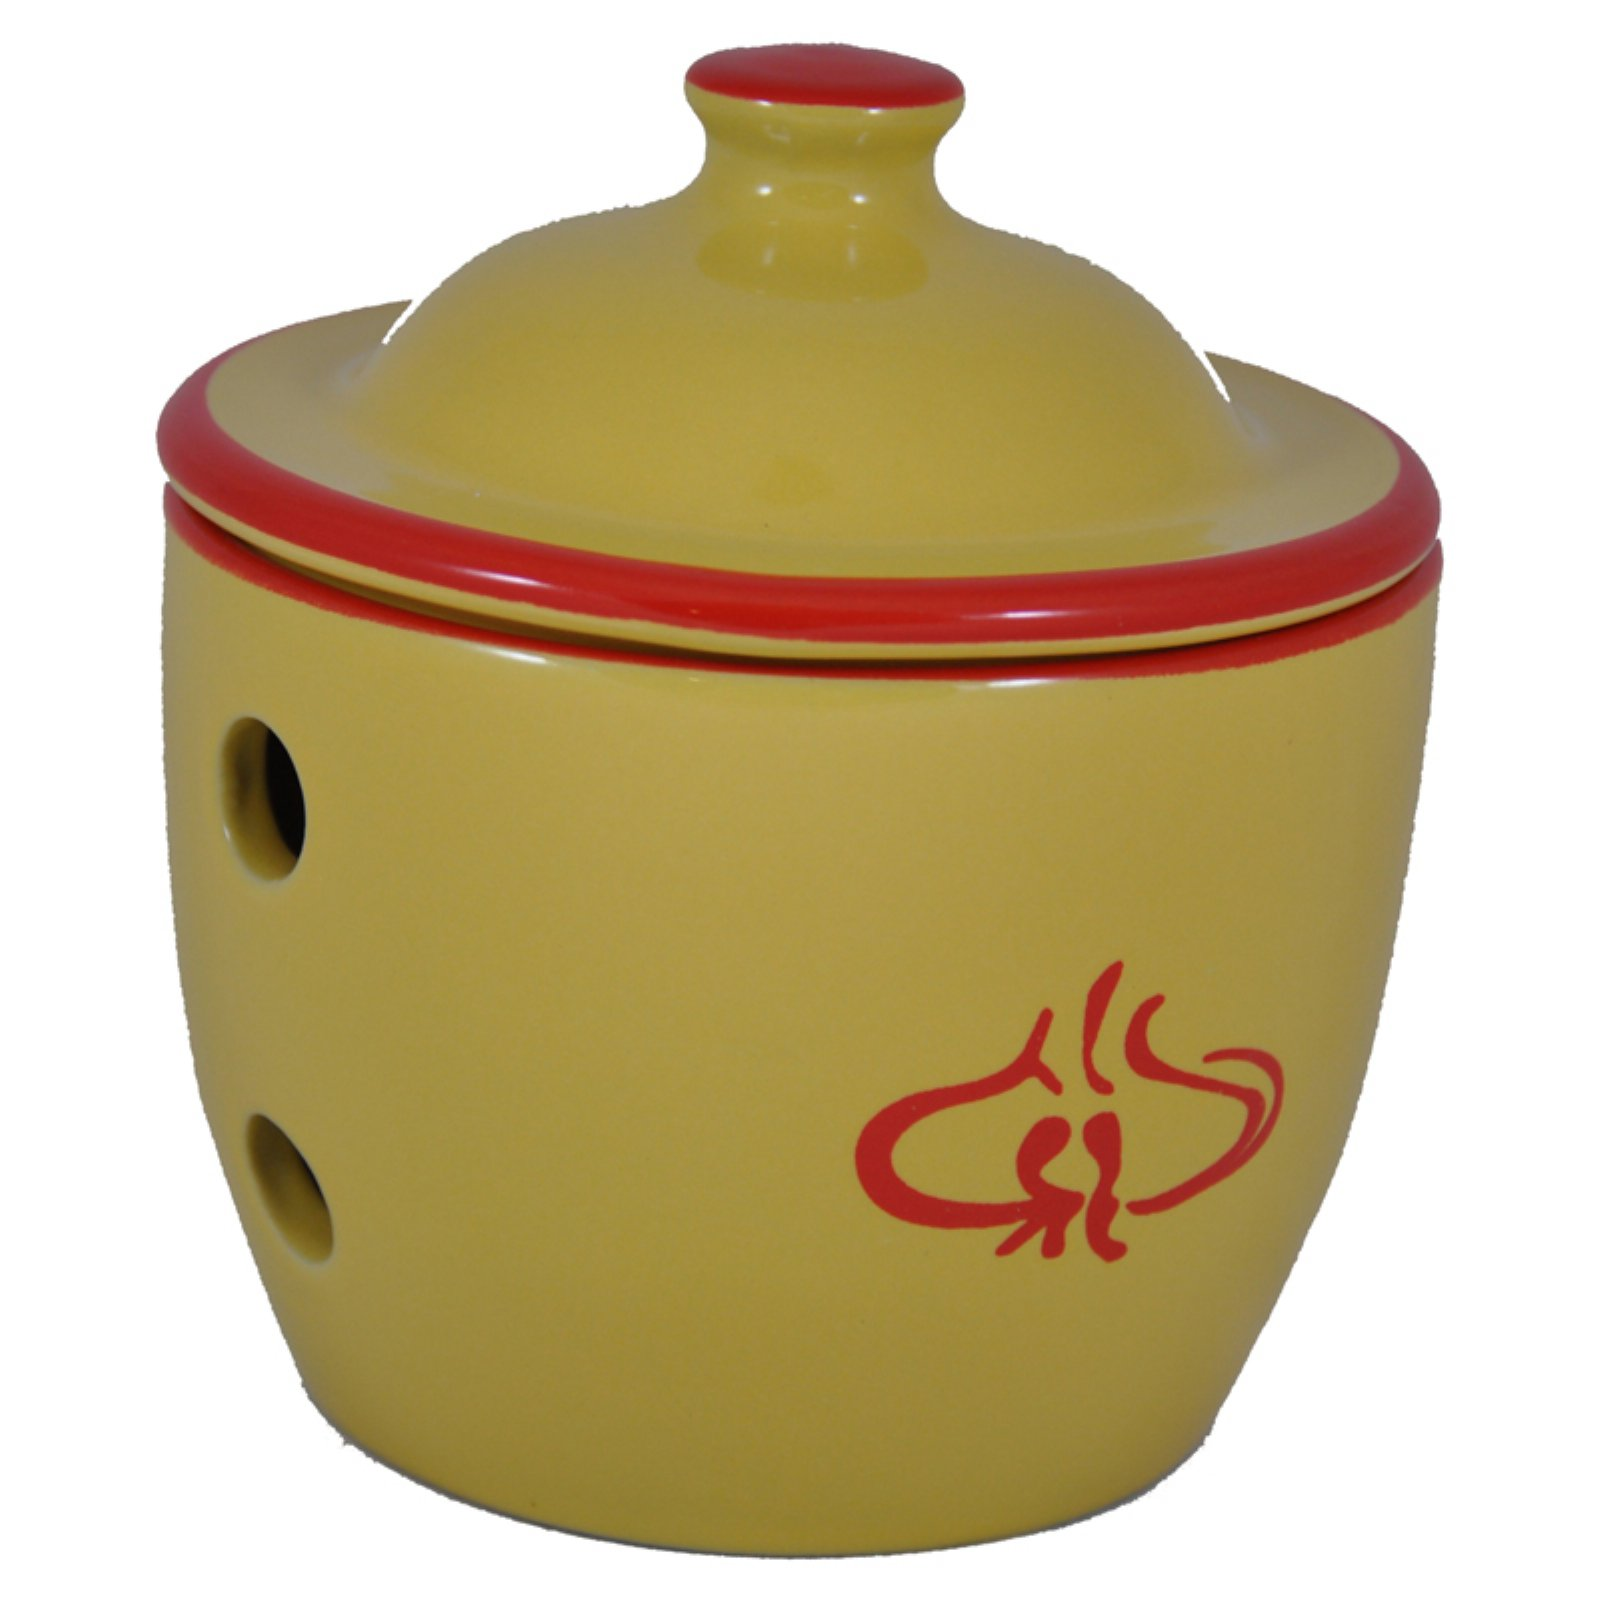 Cooks Innovations Garlic Keeper with Lid